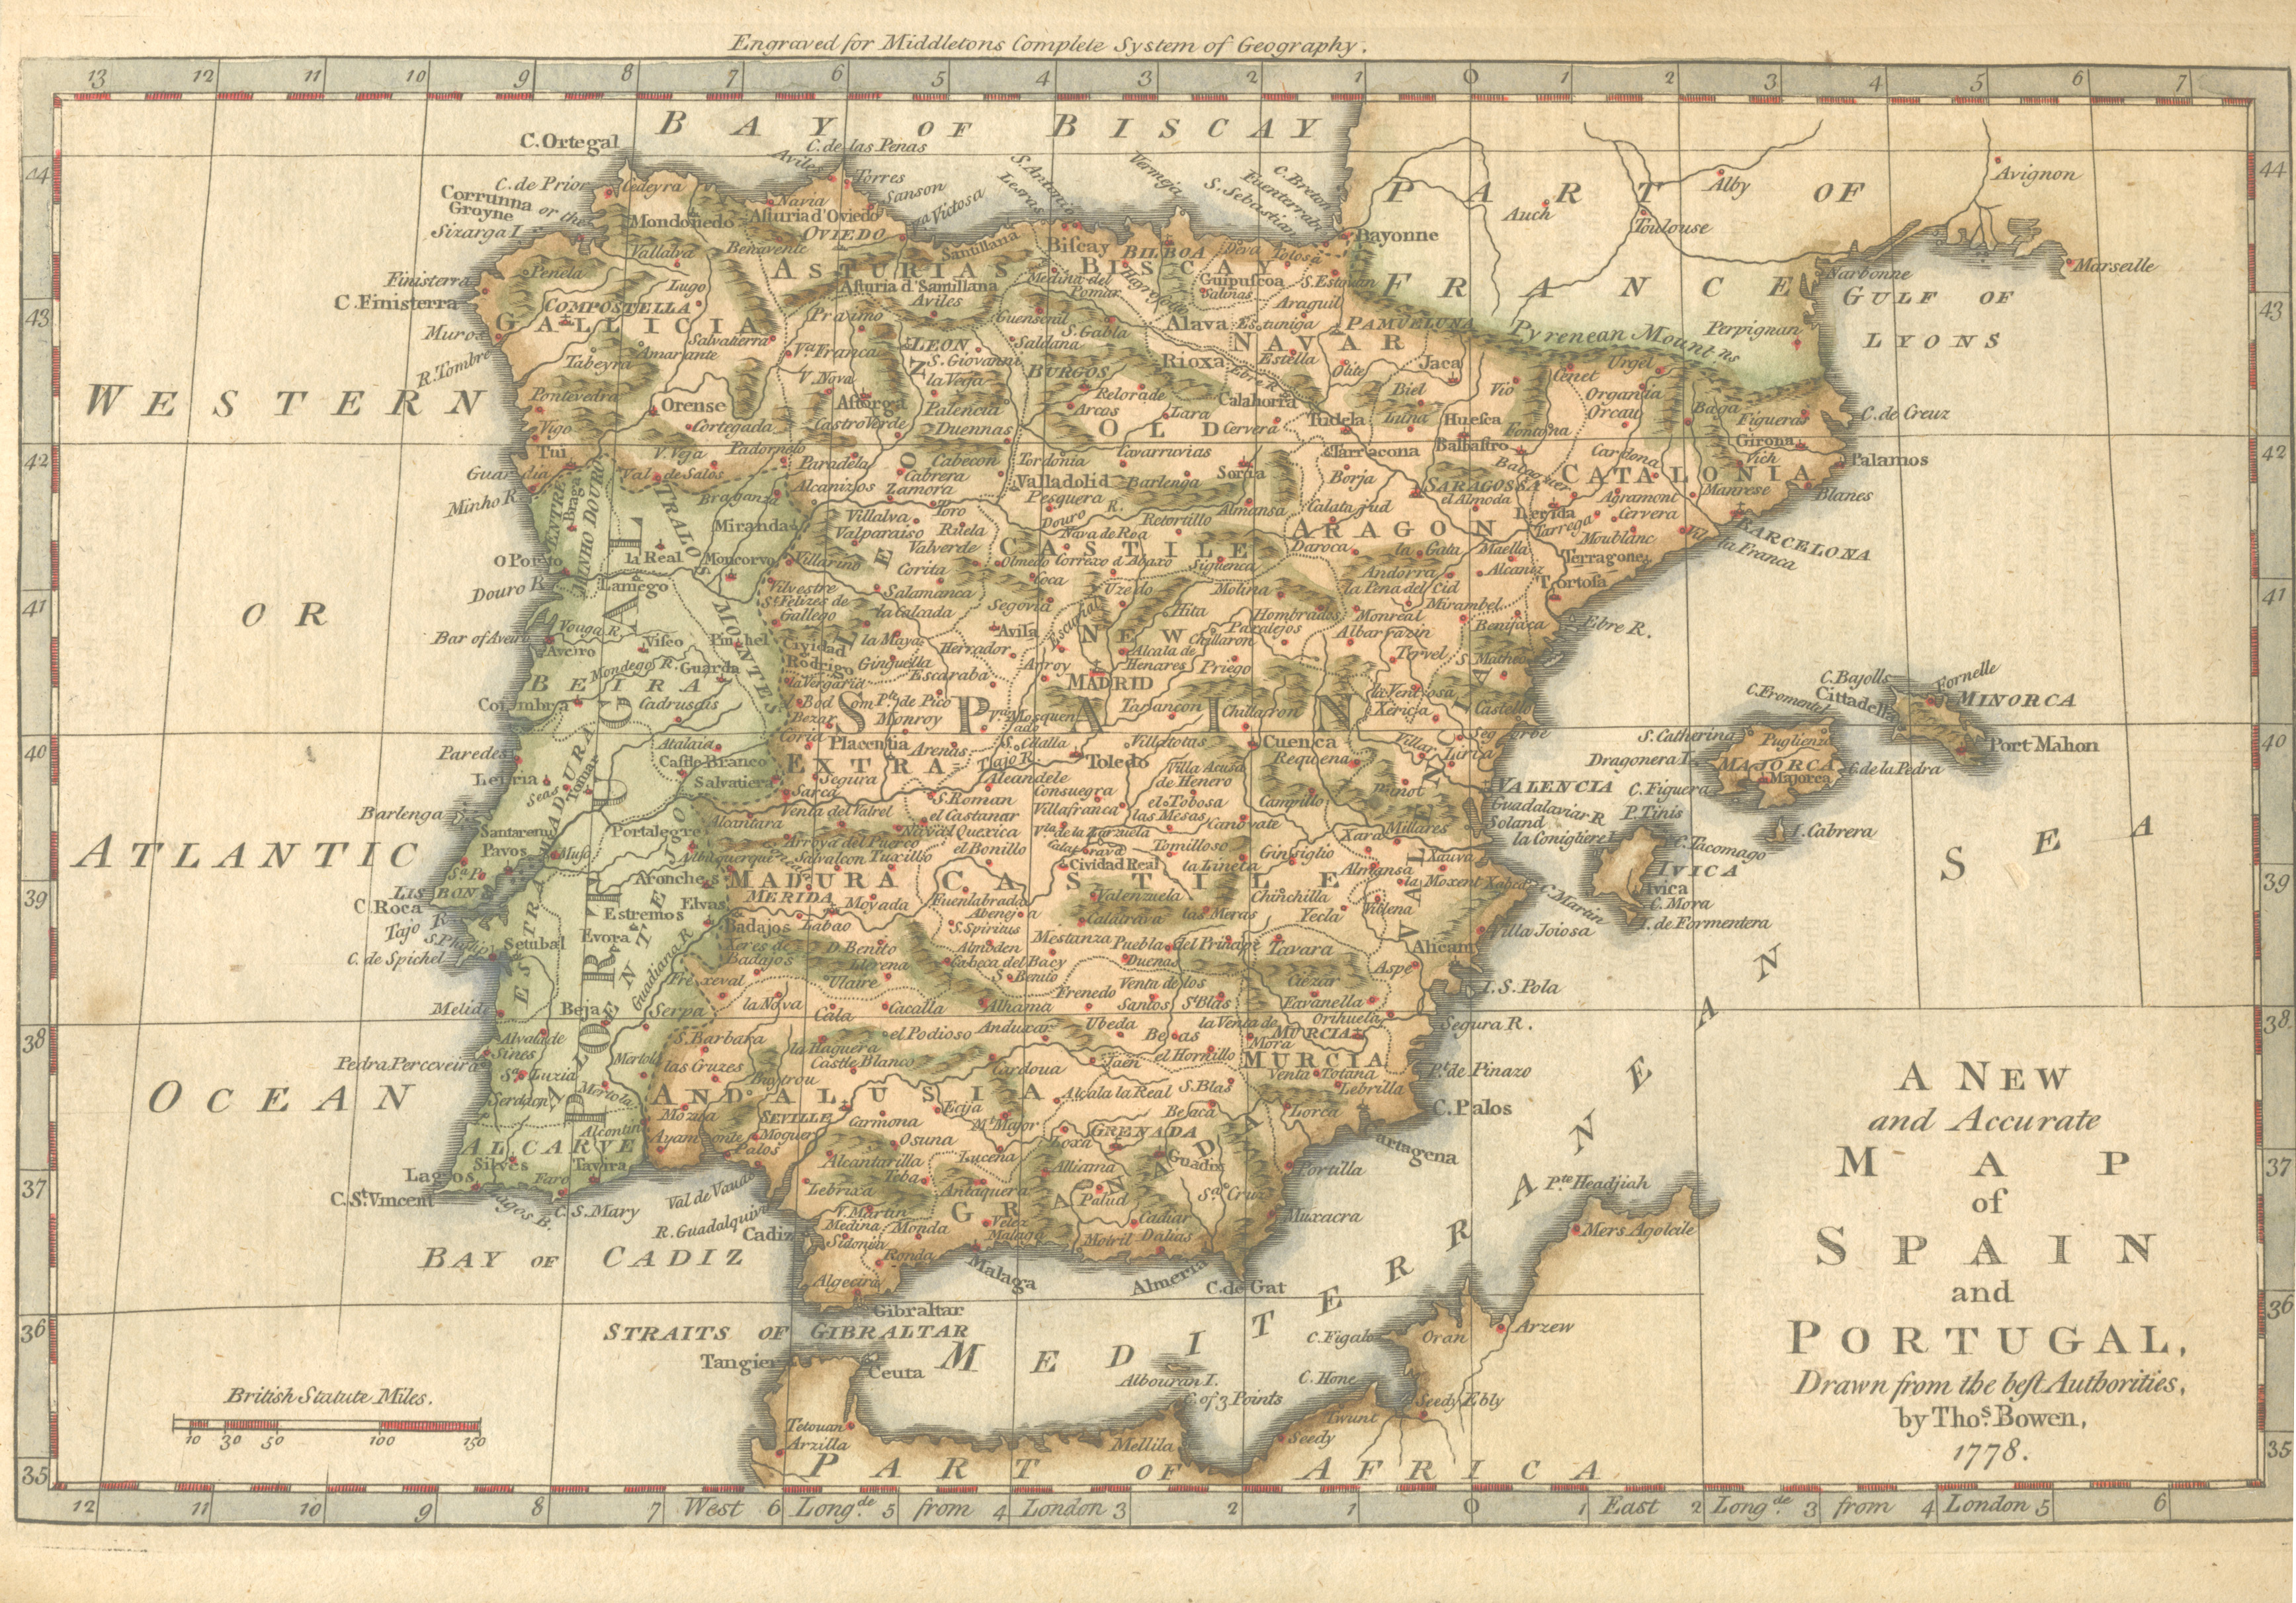 A New and Accurate Map of Spain and Portugal. Bowen c1778.